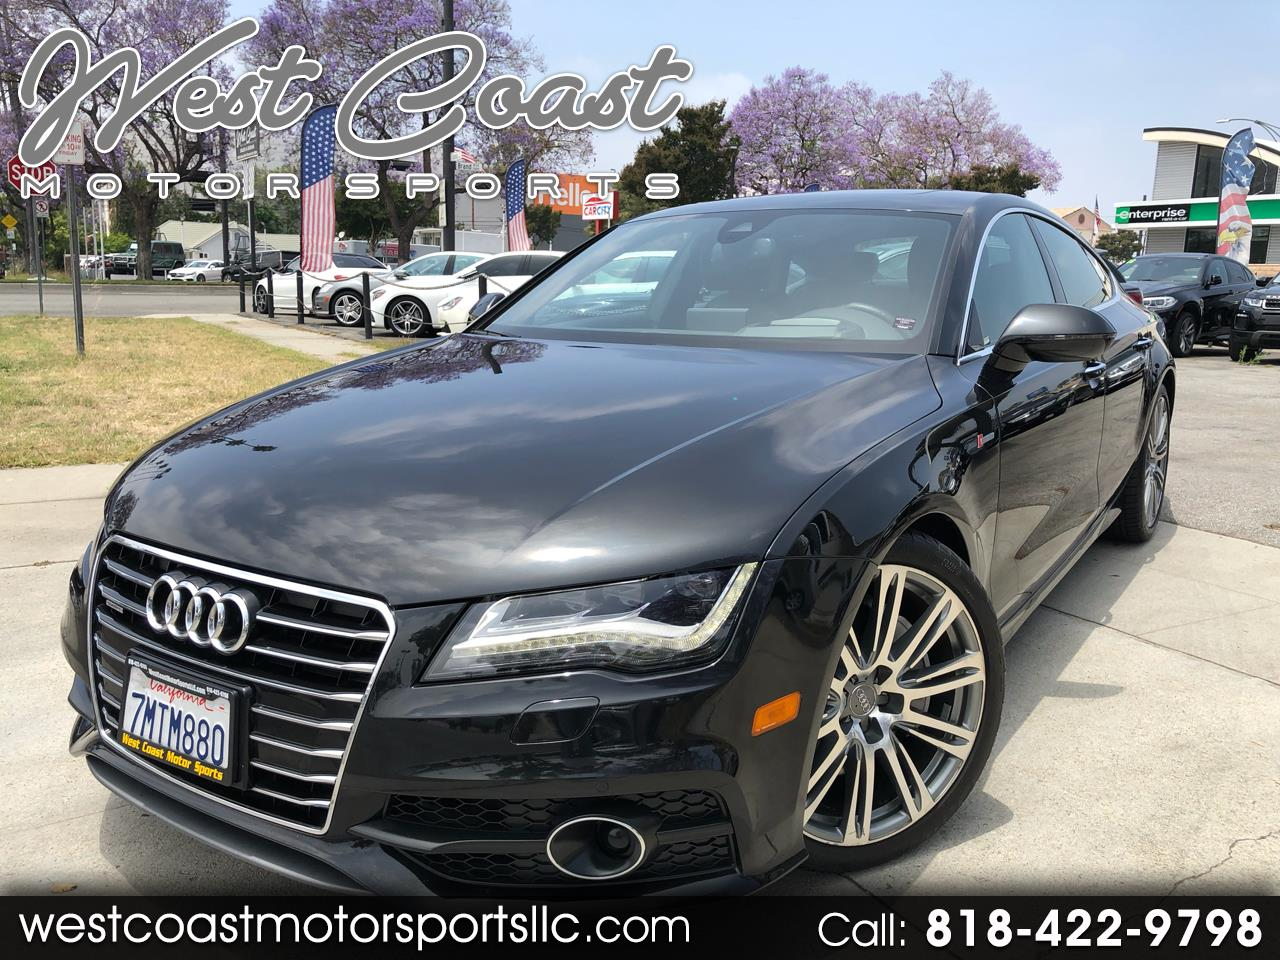 2012 Audi A7 3.0T Prestige sedan Quattro. Heads Up Display, Nig